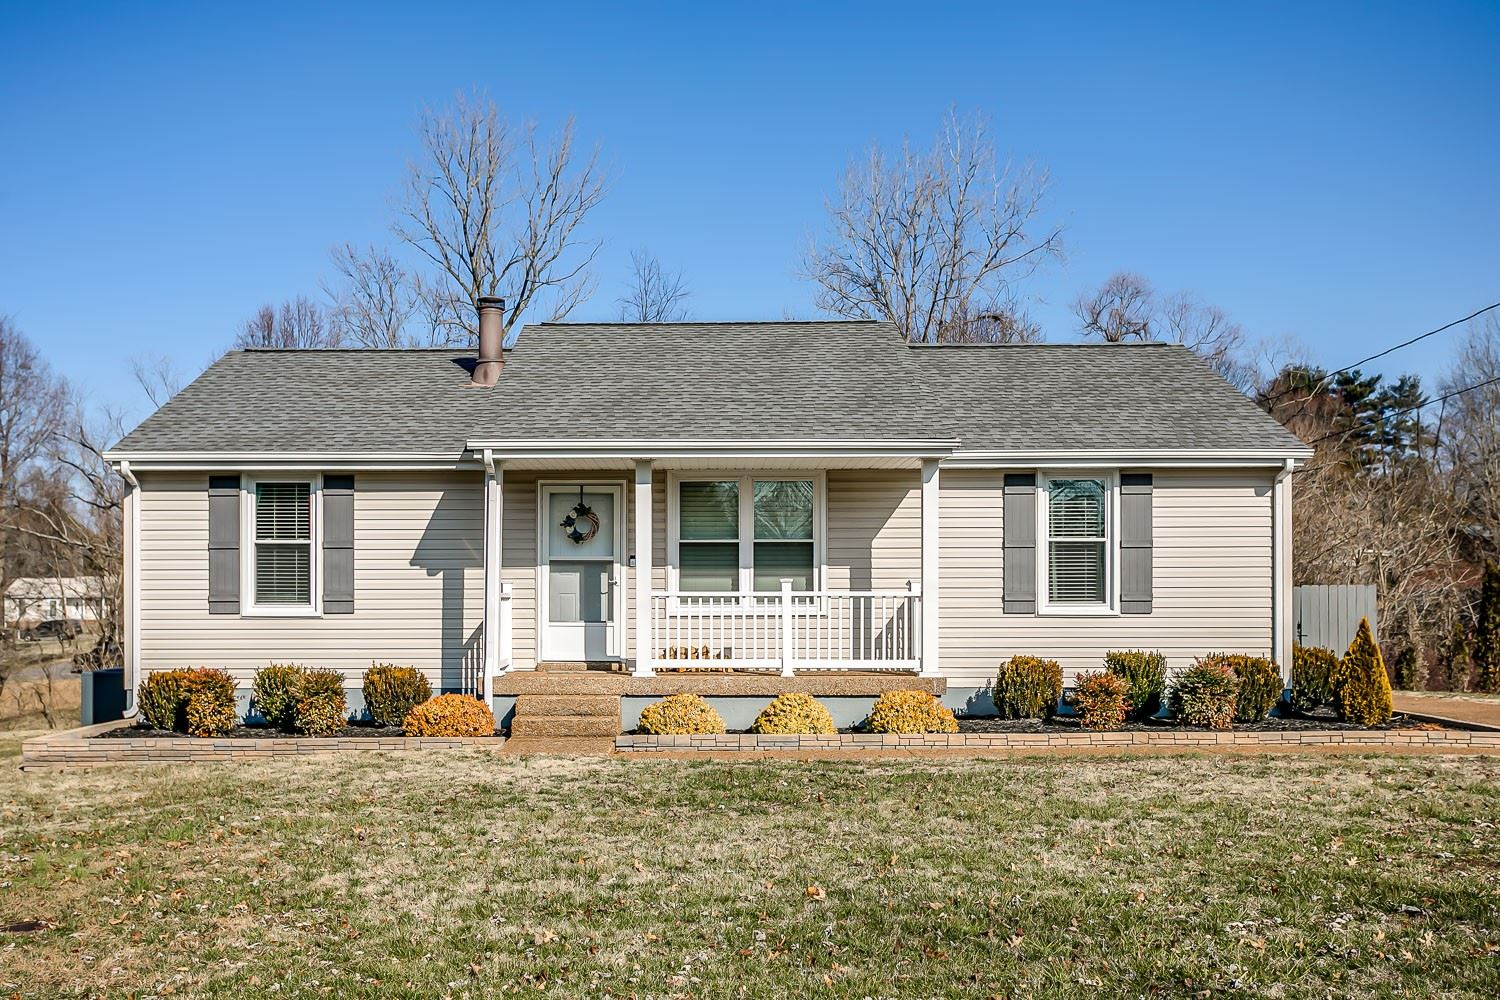 637 Teresa Dr, Old Hickory, TN 37138 - MLS#: 2220408